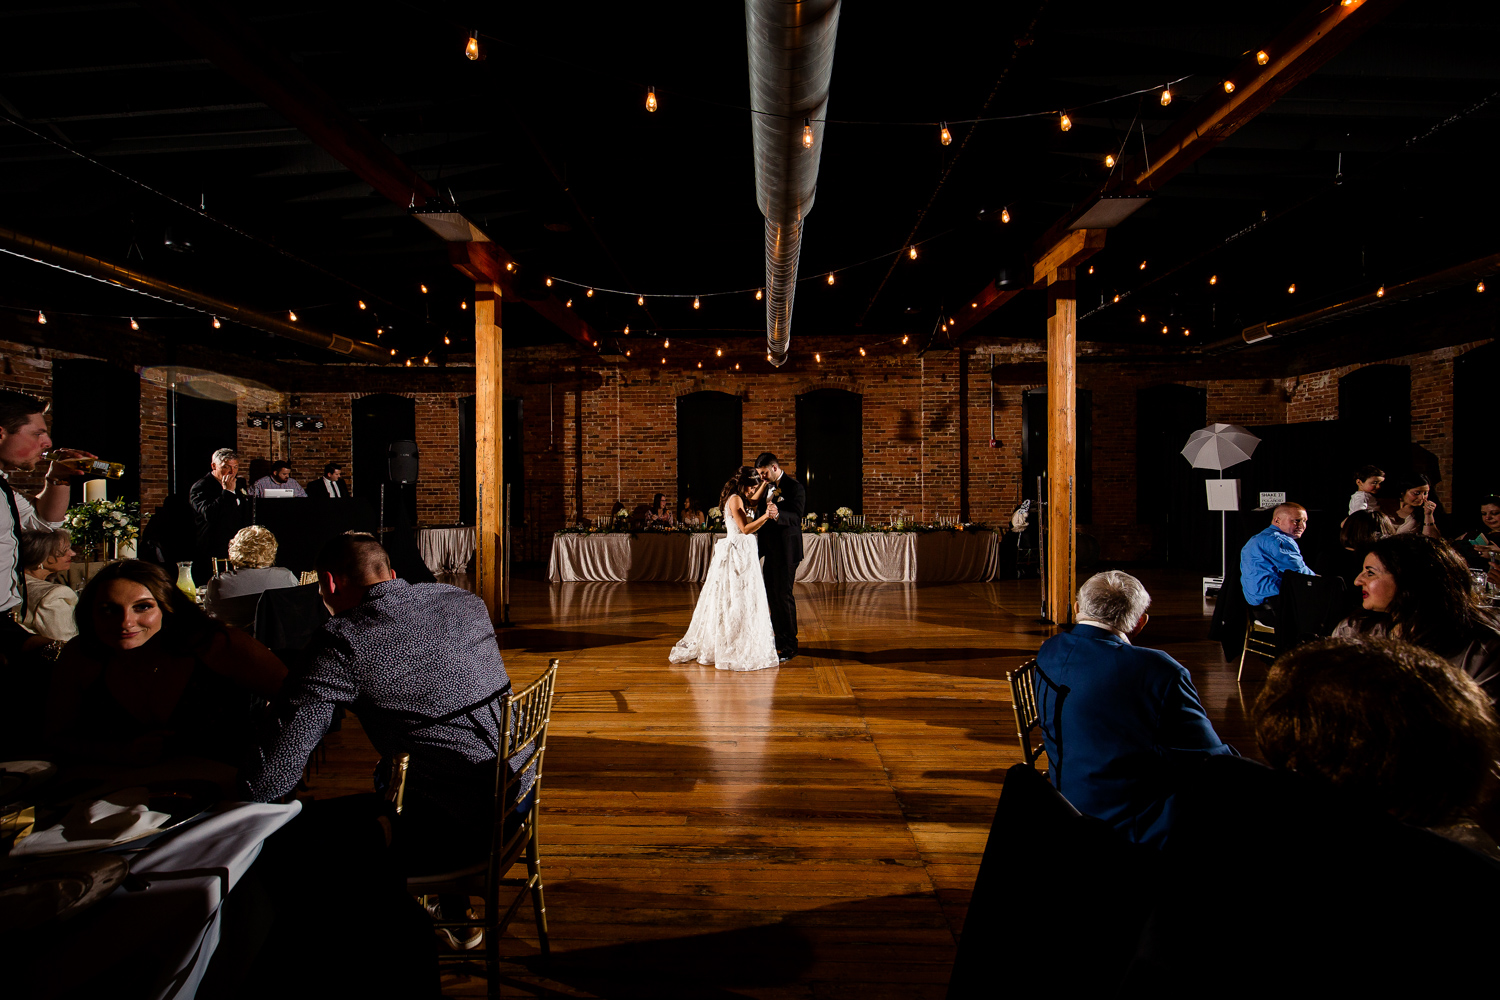 First dance at Trailside Event Center in Peoria Illinois